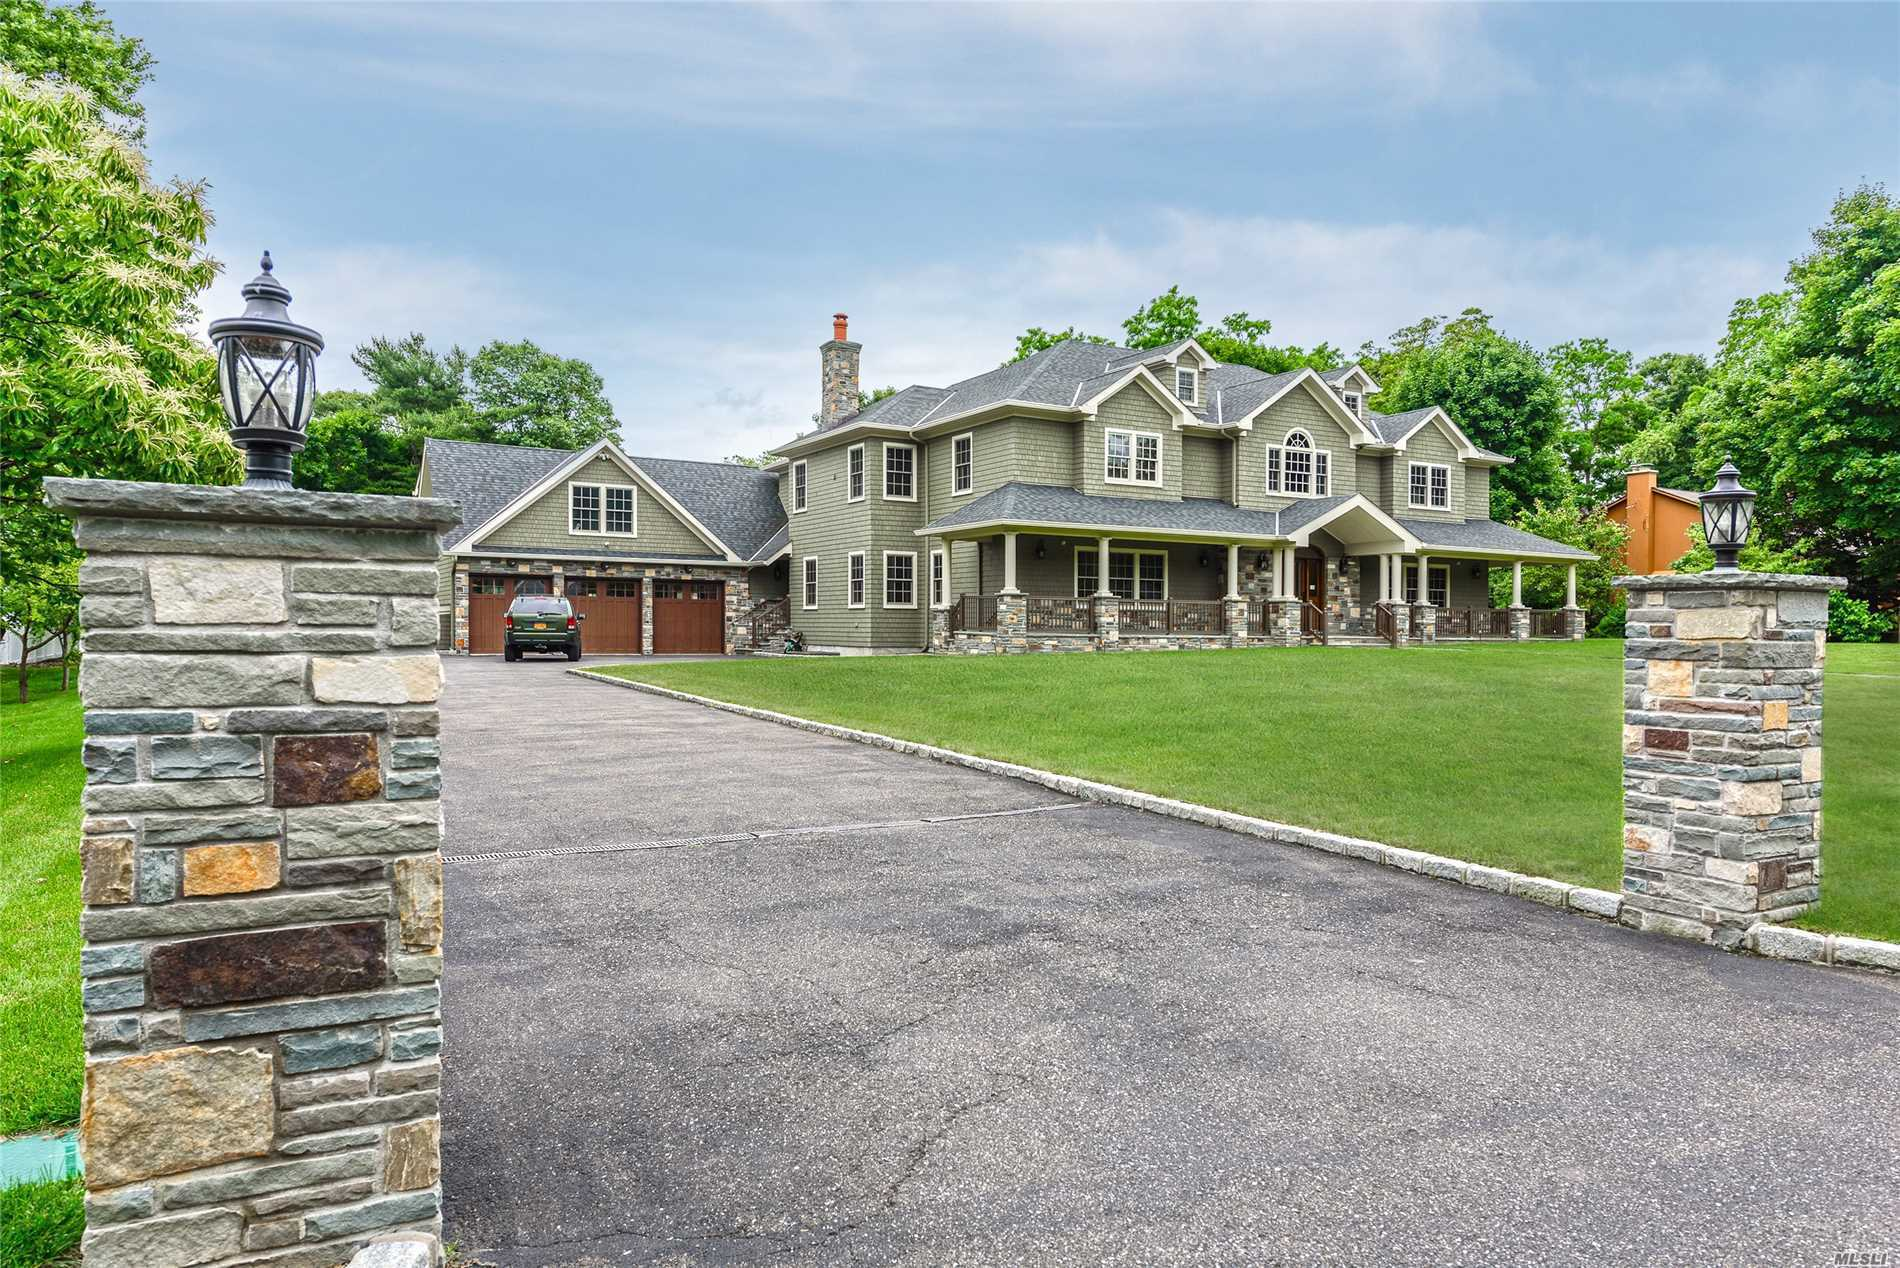 Builder's Own Luxury Home On Flat Acre Plus On Quiet Lane. Expansive Open Concept Kitchen And Great Room That Opens To Lovely Covered Bluestone Outdoor Dining Area. Six Beds And Six Full Luxury Bathrooms. All Top End Appliances Including Wolfe Gas Range And Sub Zero Refrigerator, Features Include Radiant Heat, Large Guest Suite, Master Up Or Downstairs, Large Upper Outside Deck, Three Car Garage And Loads Of Storage Throughout. Country Setting Near Beaches, Towns And Train.